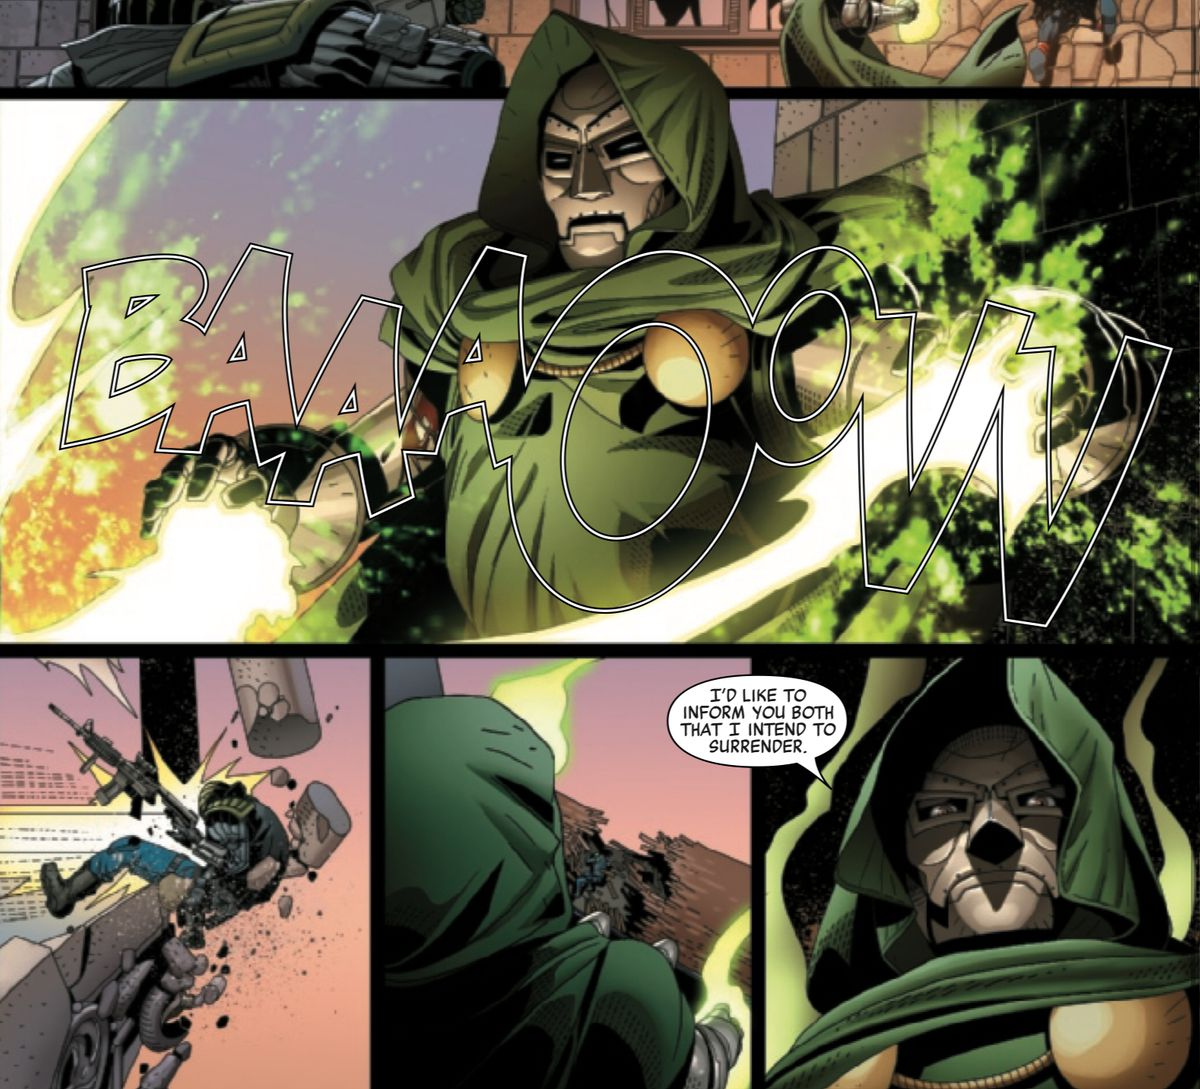 After decisively blasting two assailants off the roof of his castle, Doctor Doom informs them that he intends to surrender, in Doctor Doom #1, Marvel Comics (2019).